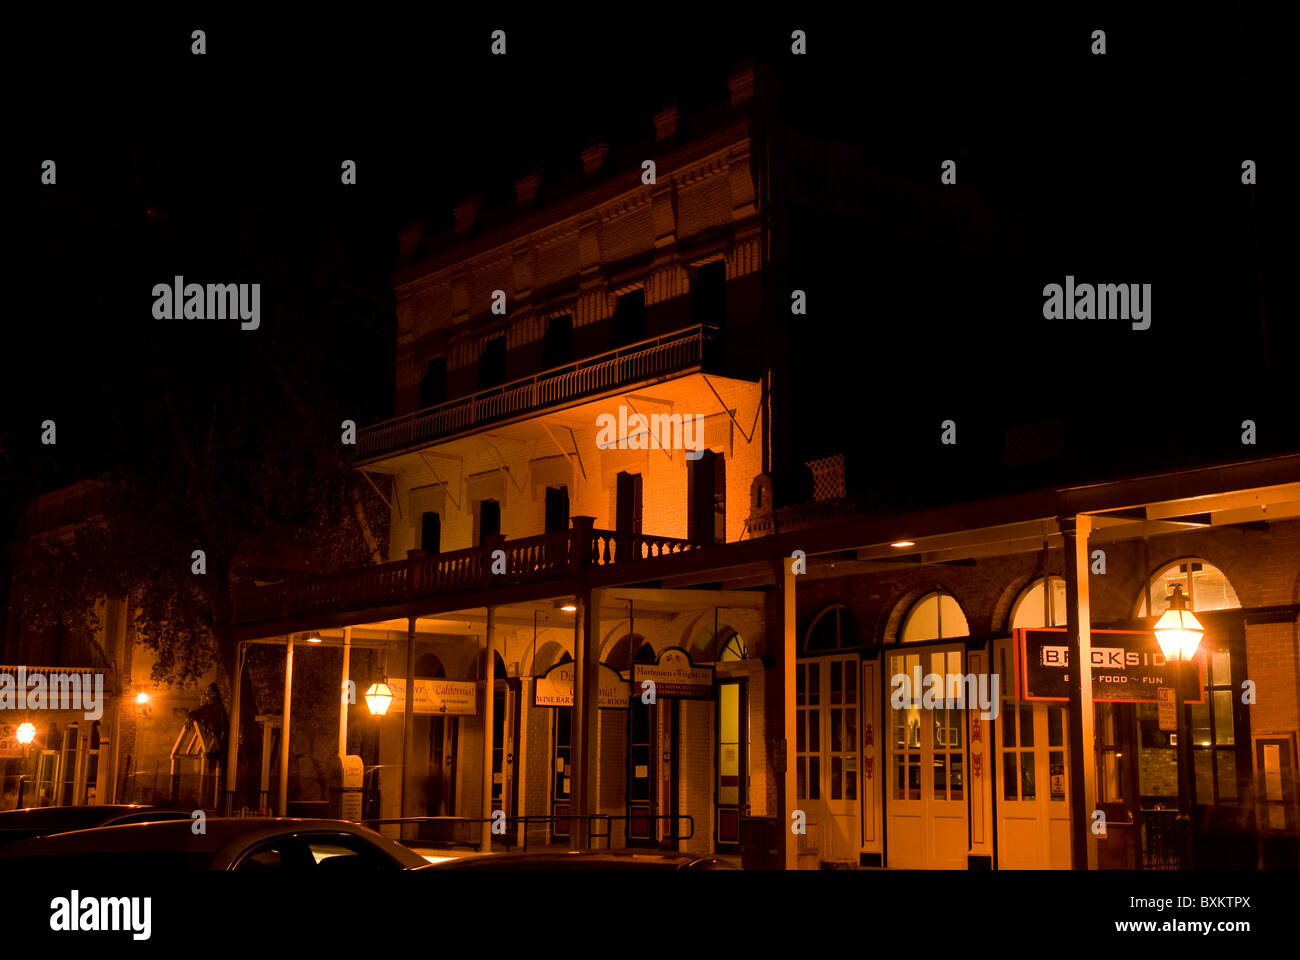 Street view of Old Sacramento at night Stock Photo